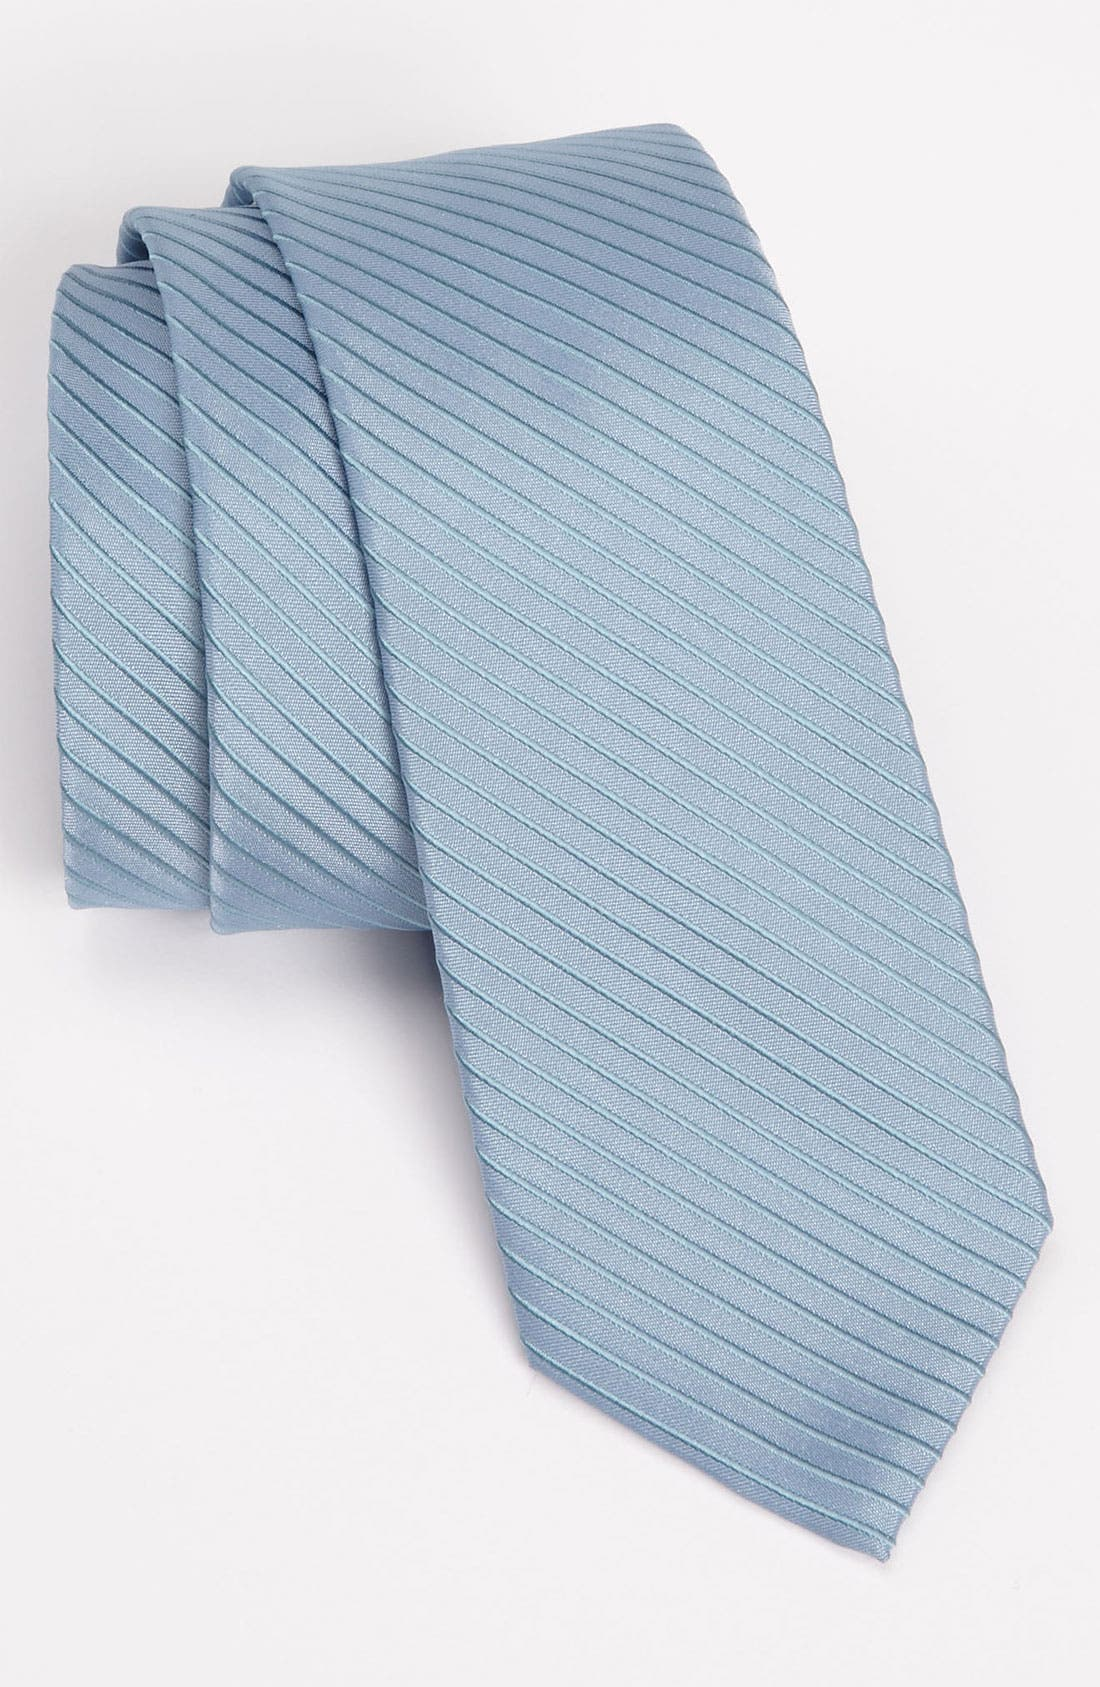 Alternate Image 1 Selected - Calvin Klein Woven Silk Tie (Online Only)